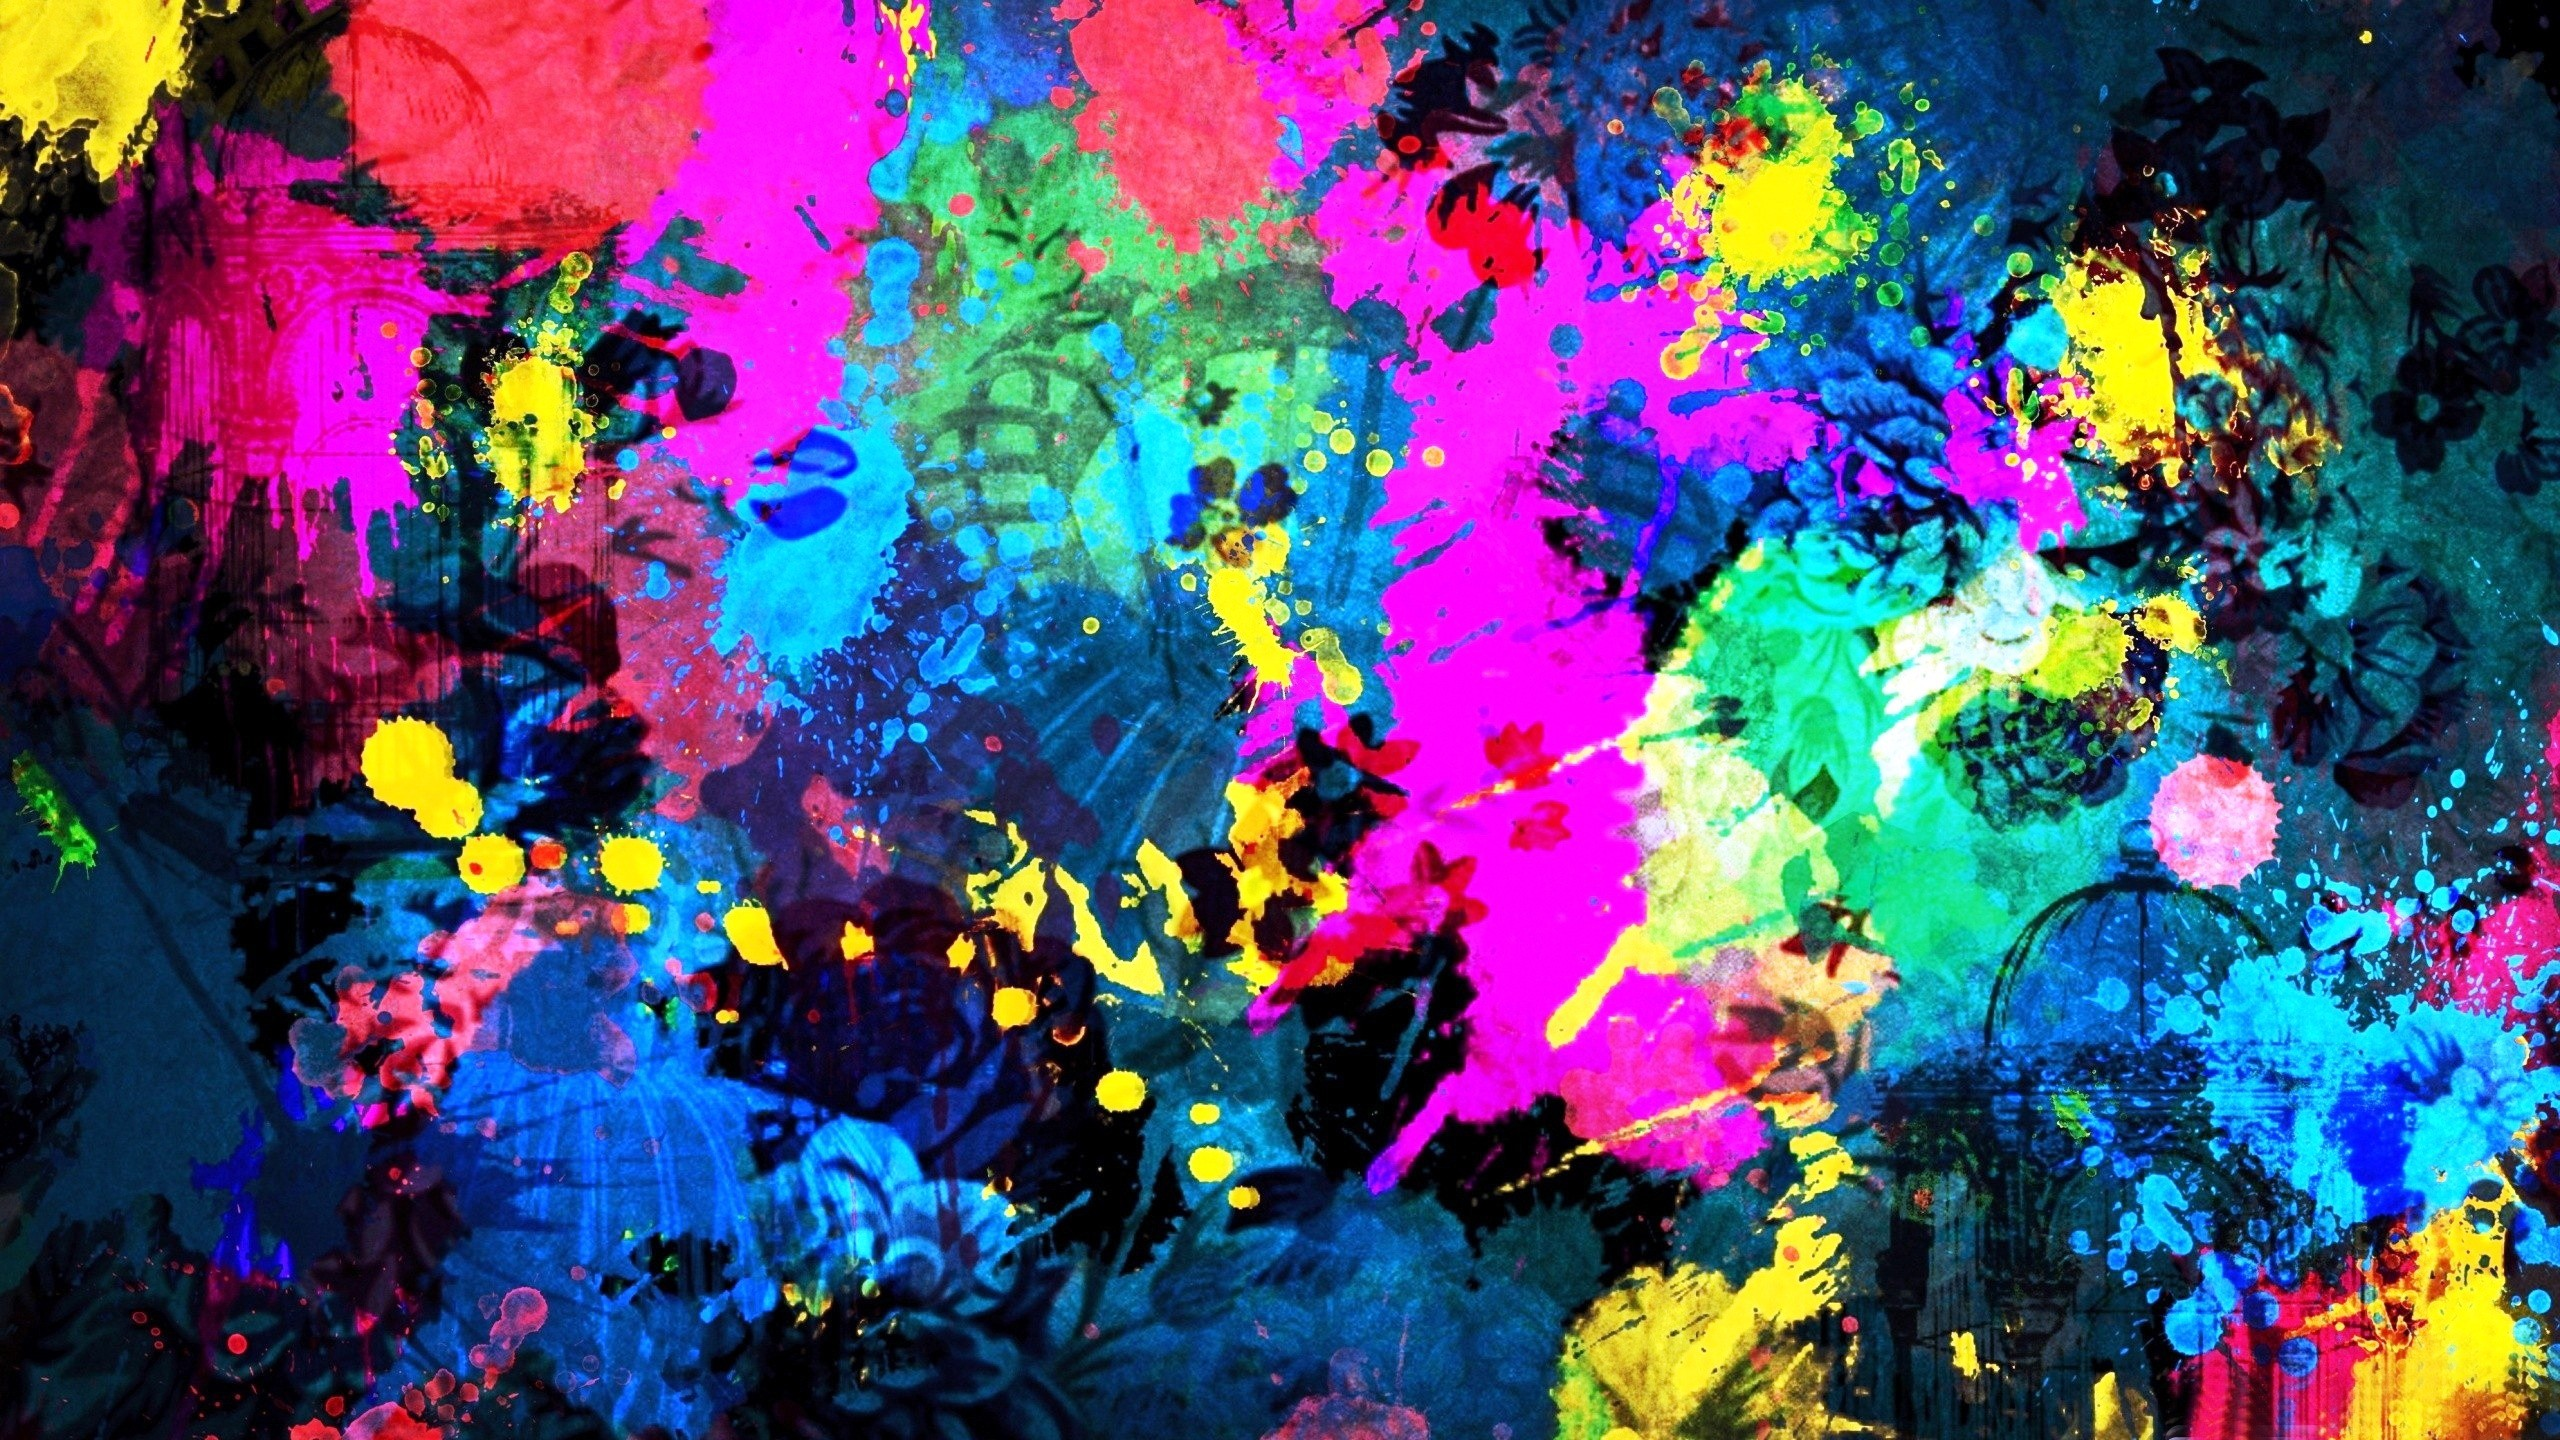 Abstract Art Wallpaper